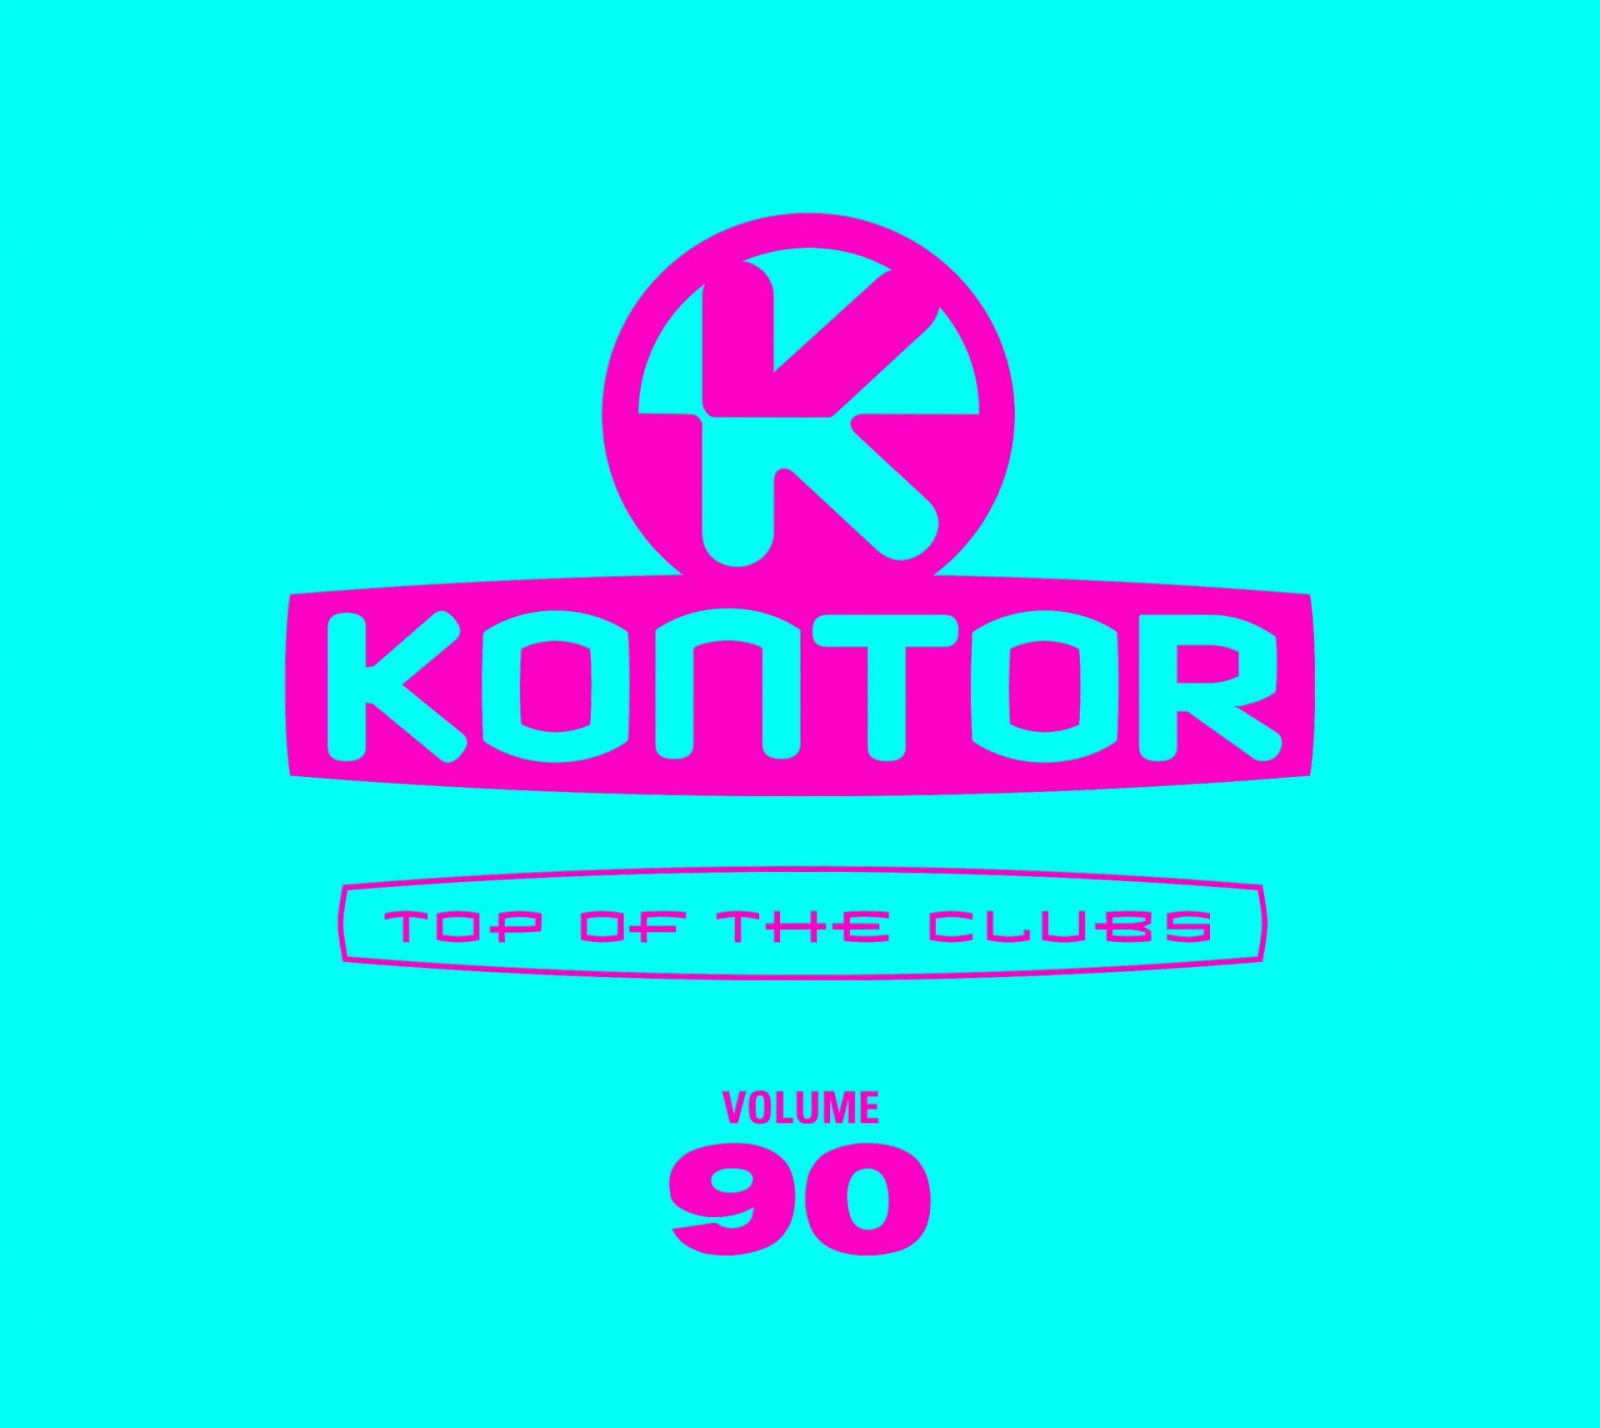 VARIOUS ARTISTS - KONTOR TOP OF THE CLUBS VOL. 90